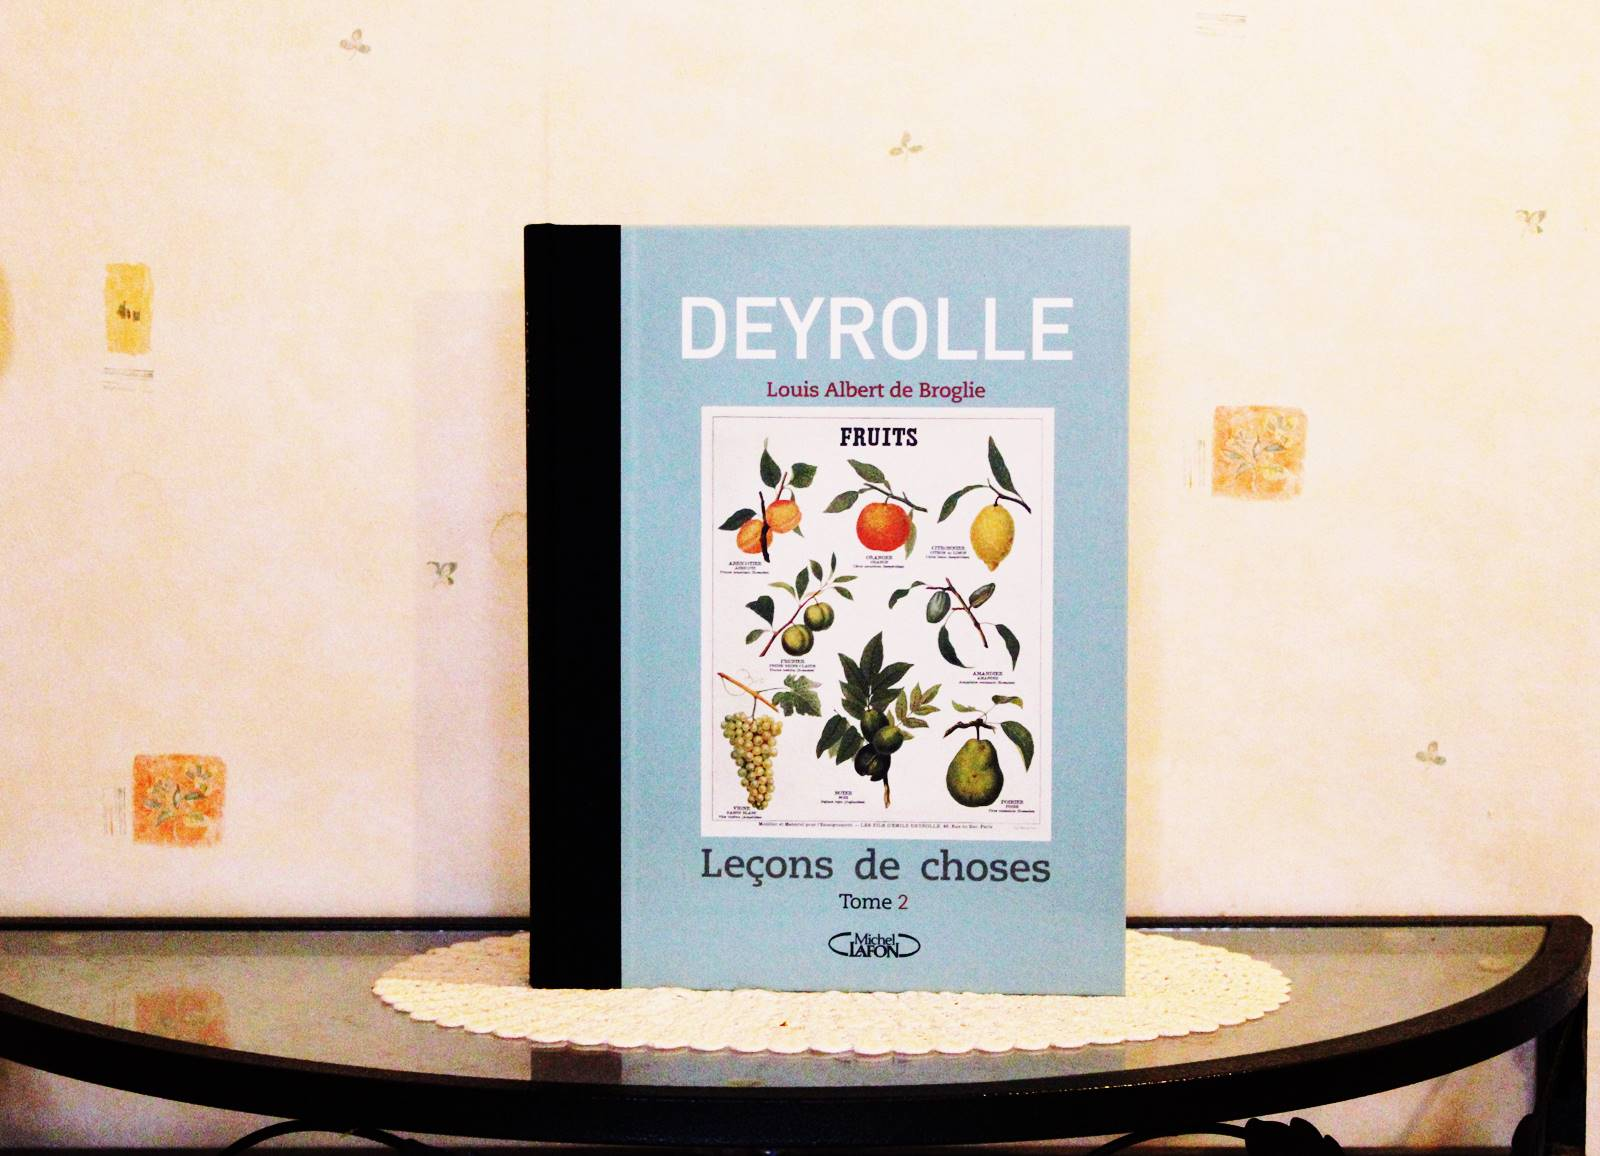 Deyrolle lecon de choses tome 2 vrai 2